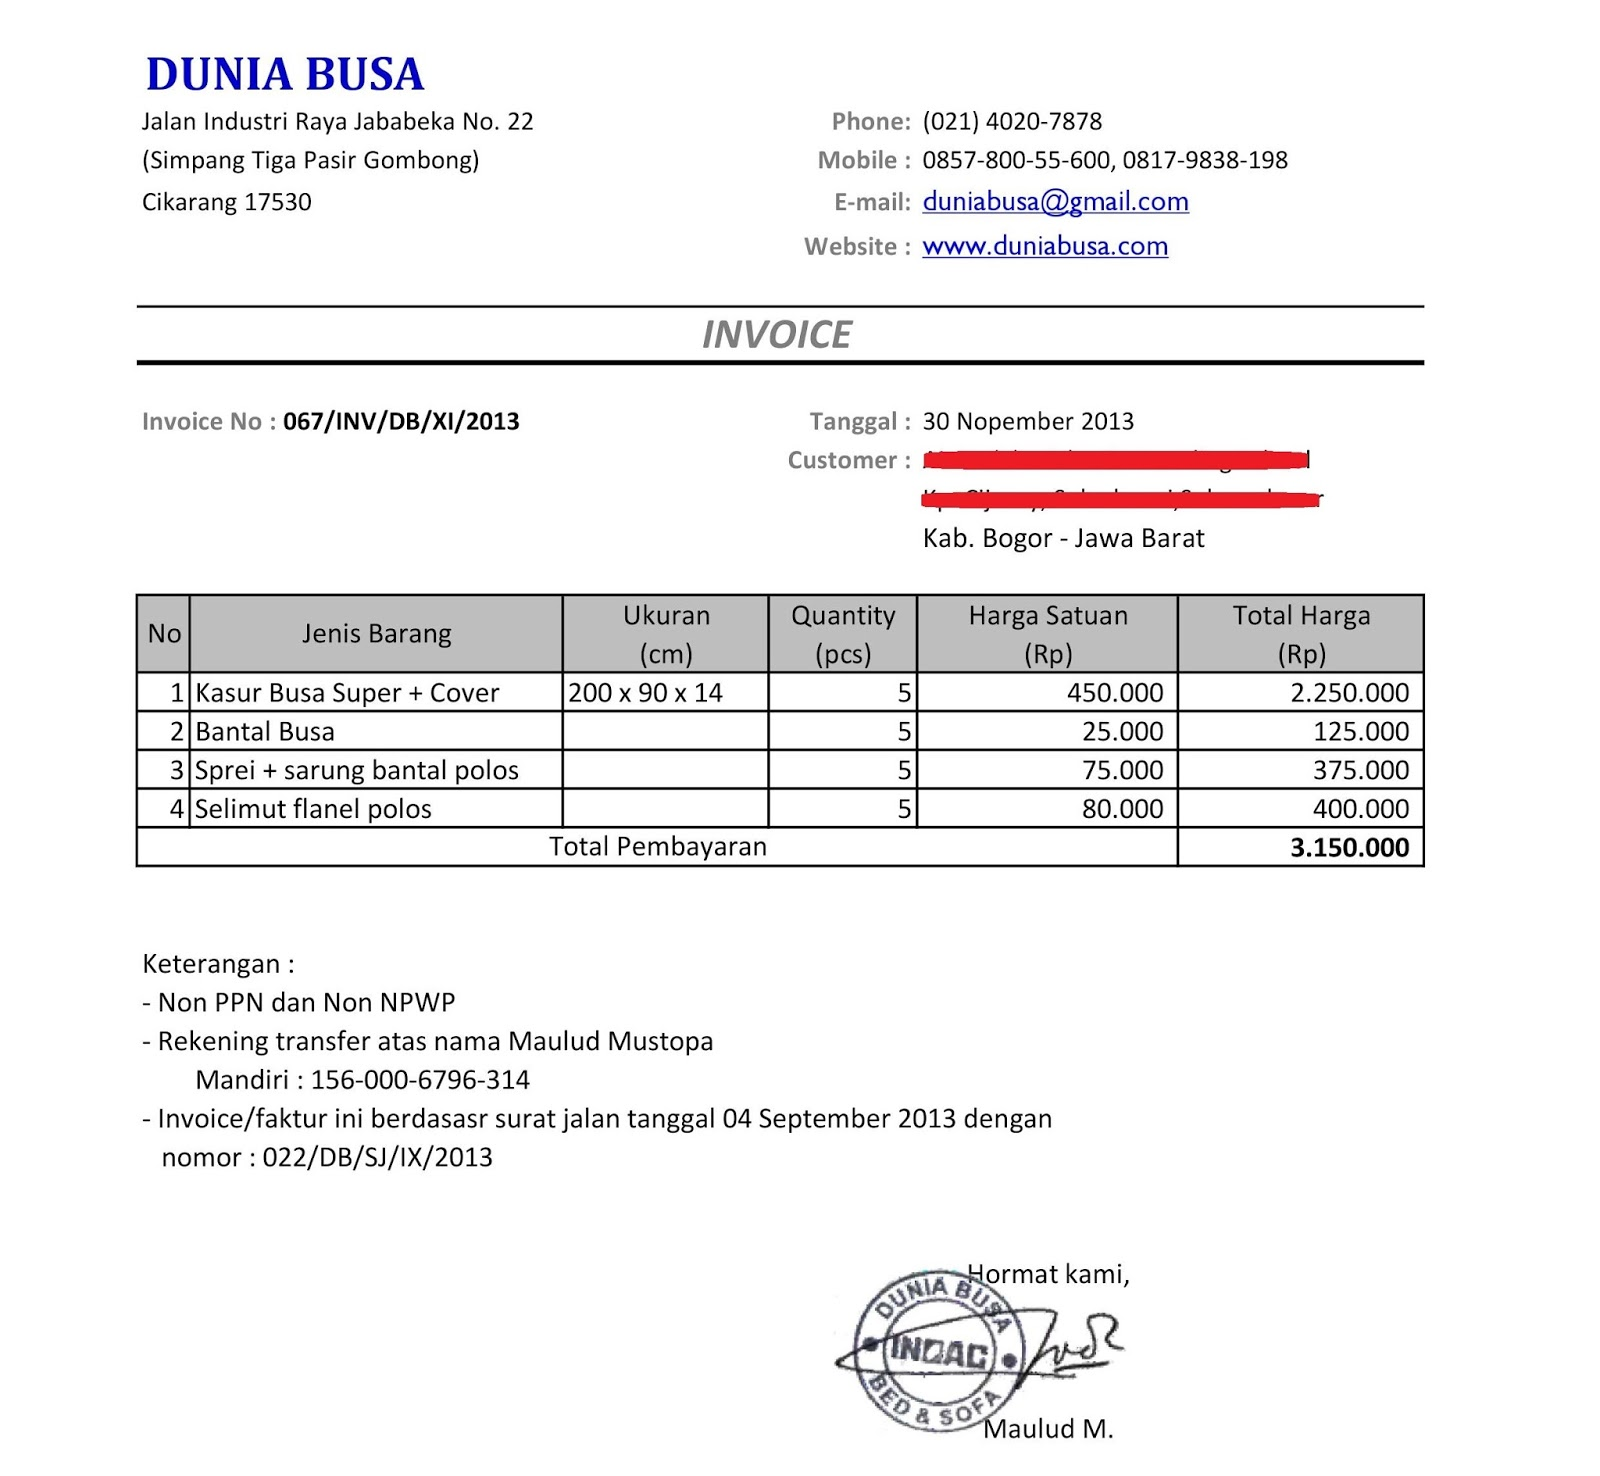 Usdgus  Nice Free Invoice Online  Create Invoice Online  Invoice Template  With Fair Contoh Format Invoice Atau Surat Tagihan  Brankas Arsip  Free Invoice Online With Beautiful Ato Tax Invoice Template Also How To Invoice For Services In Addition Miscellaneous Invoice And Free Business Invoice Templates Word As Well As Invoice Factoring Costs Additionally Purchase Invoice Format From Sklepco With Usdgus  Fair Free Invoice Online  Create Invoice Online  Invoice Template  With Beautiful Contoh Format Invoice Atau Surat Tagihan  Brankas Arsip  Free Invoice Online And Nice Ato Tax Invoice Template Also How To Invoice For Services In Addition Miscellaneous Invoice From Sklepco